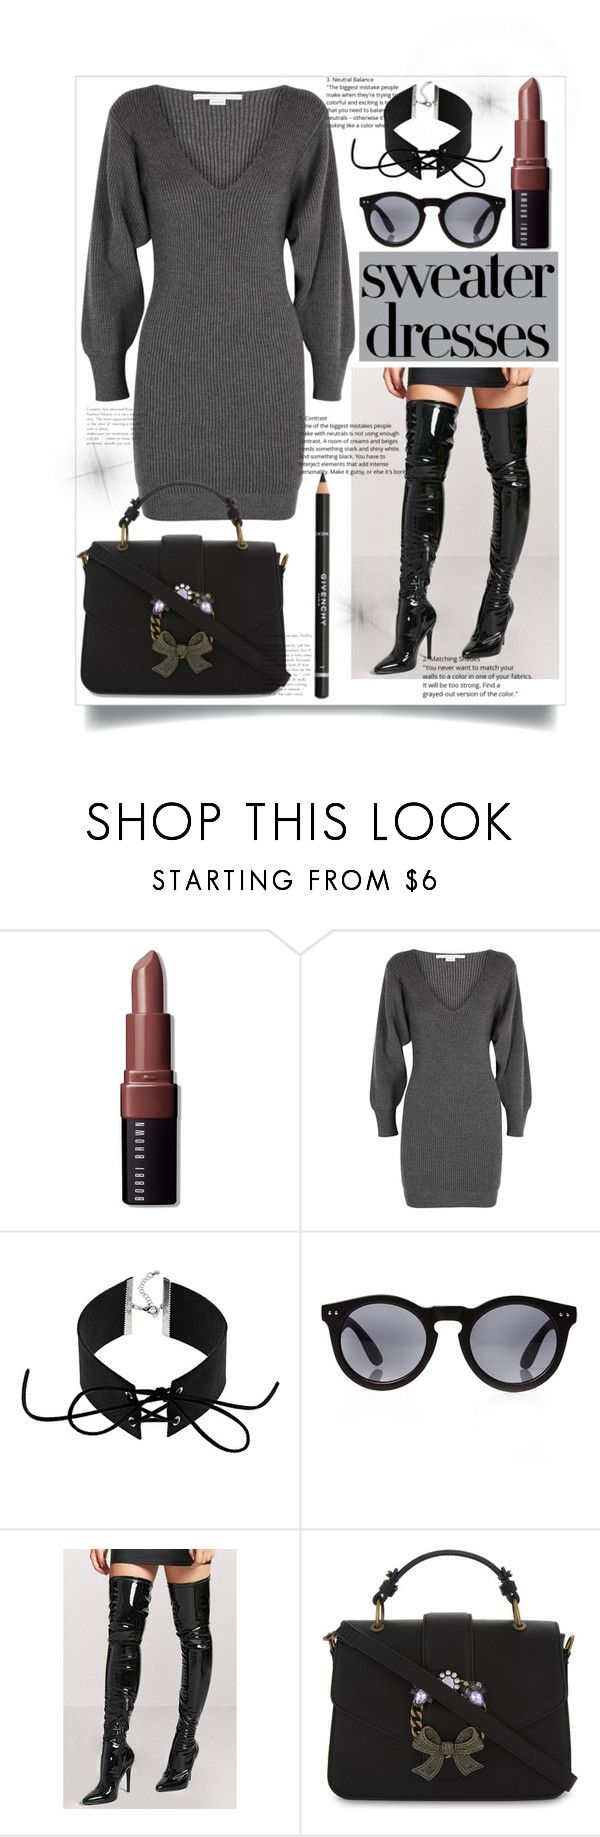 """Rock It !!"" by bitty-junkkitty ❤ liked on Polyvore featuring Bobbi Brown Cosmetics, STELLA McCARTNEY, Mudd, 21 Men, Forever 21, ALDO and Givenchy"